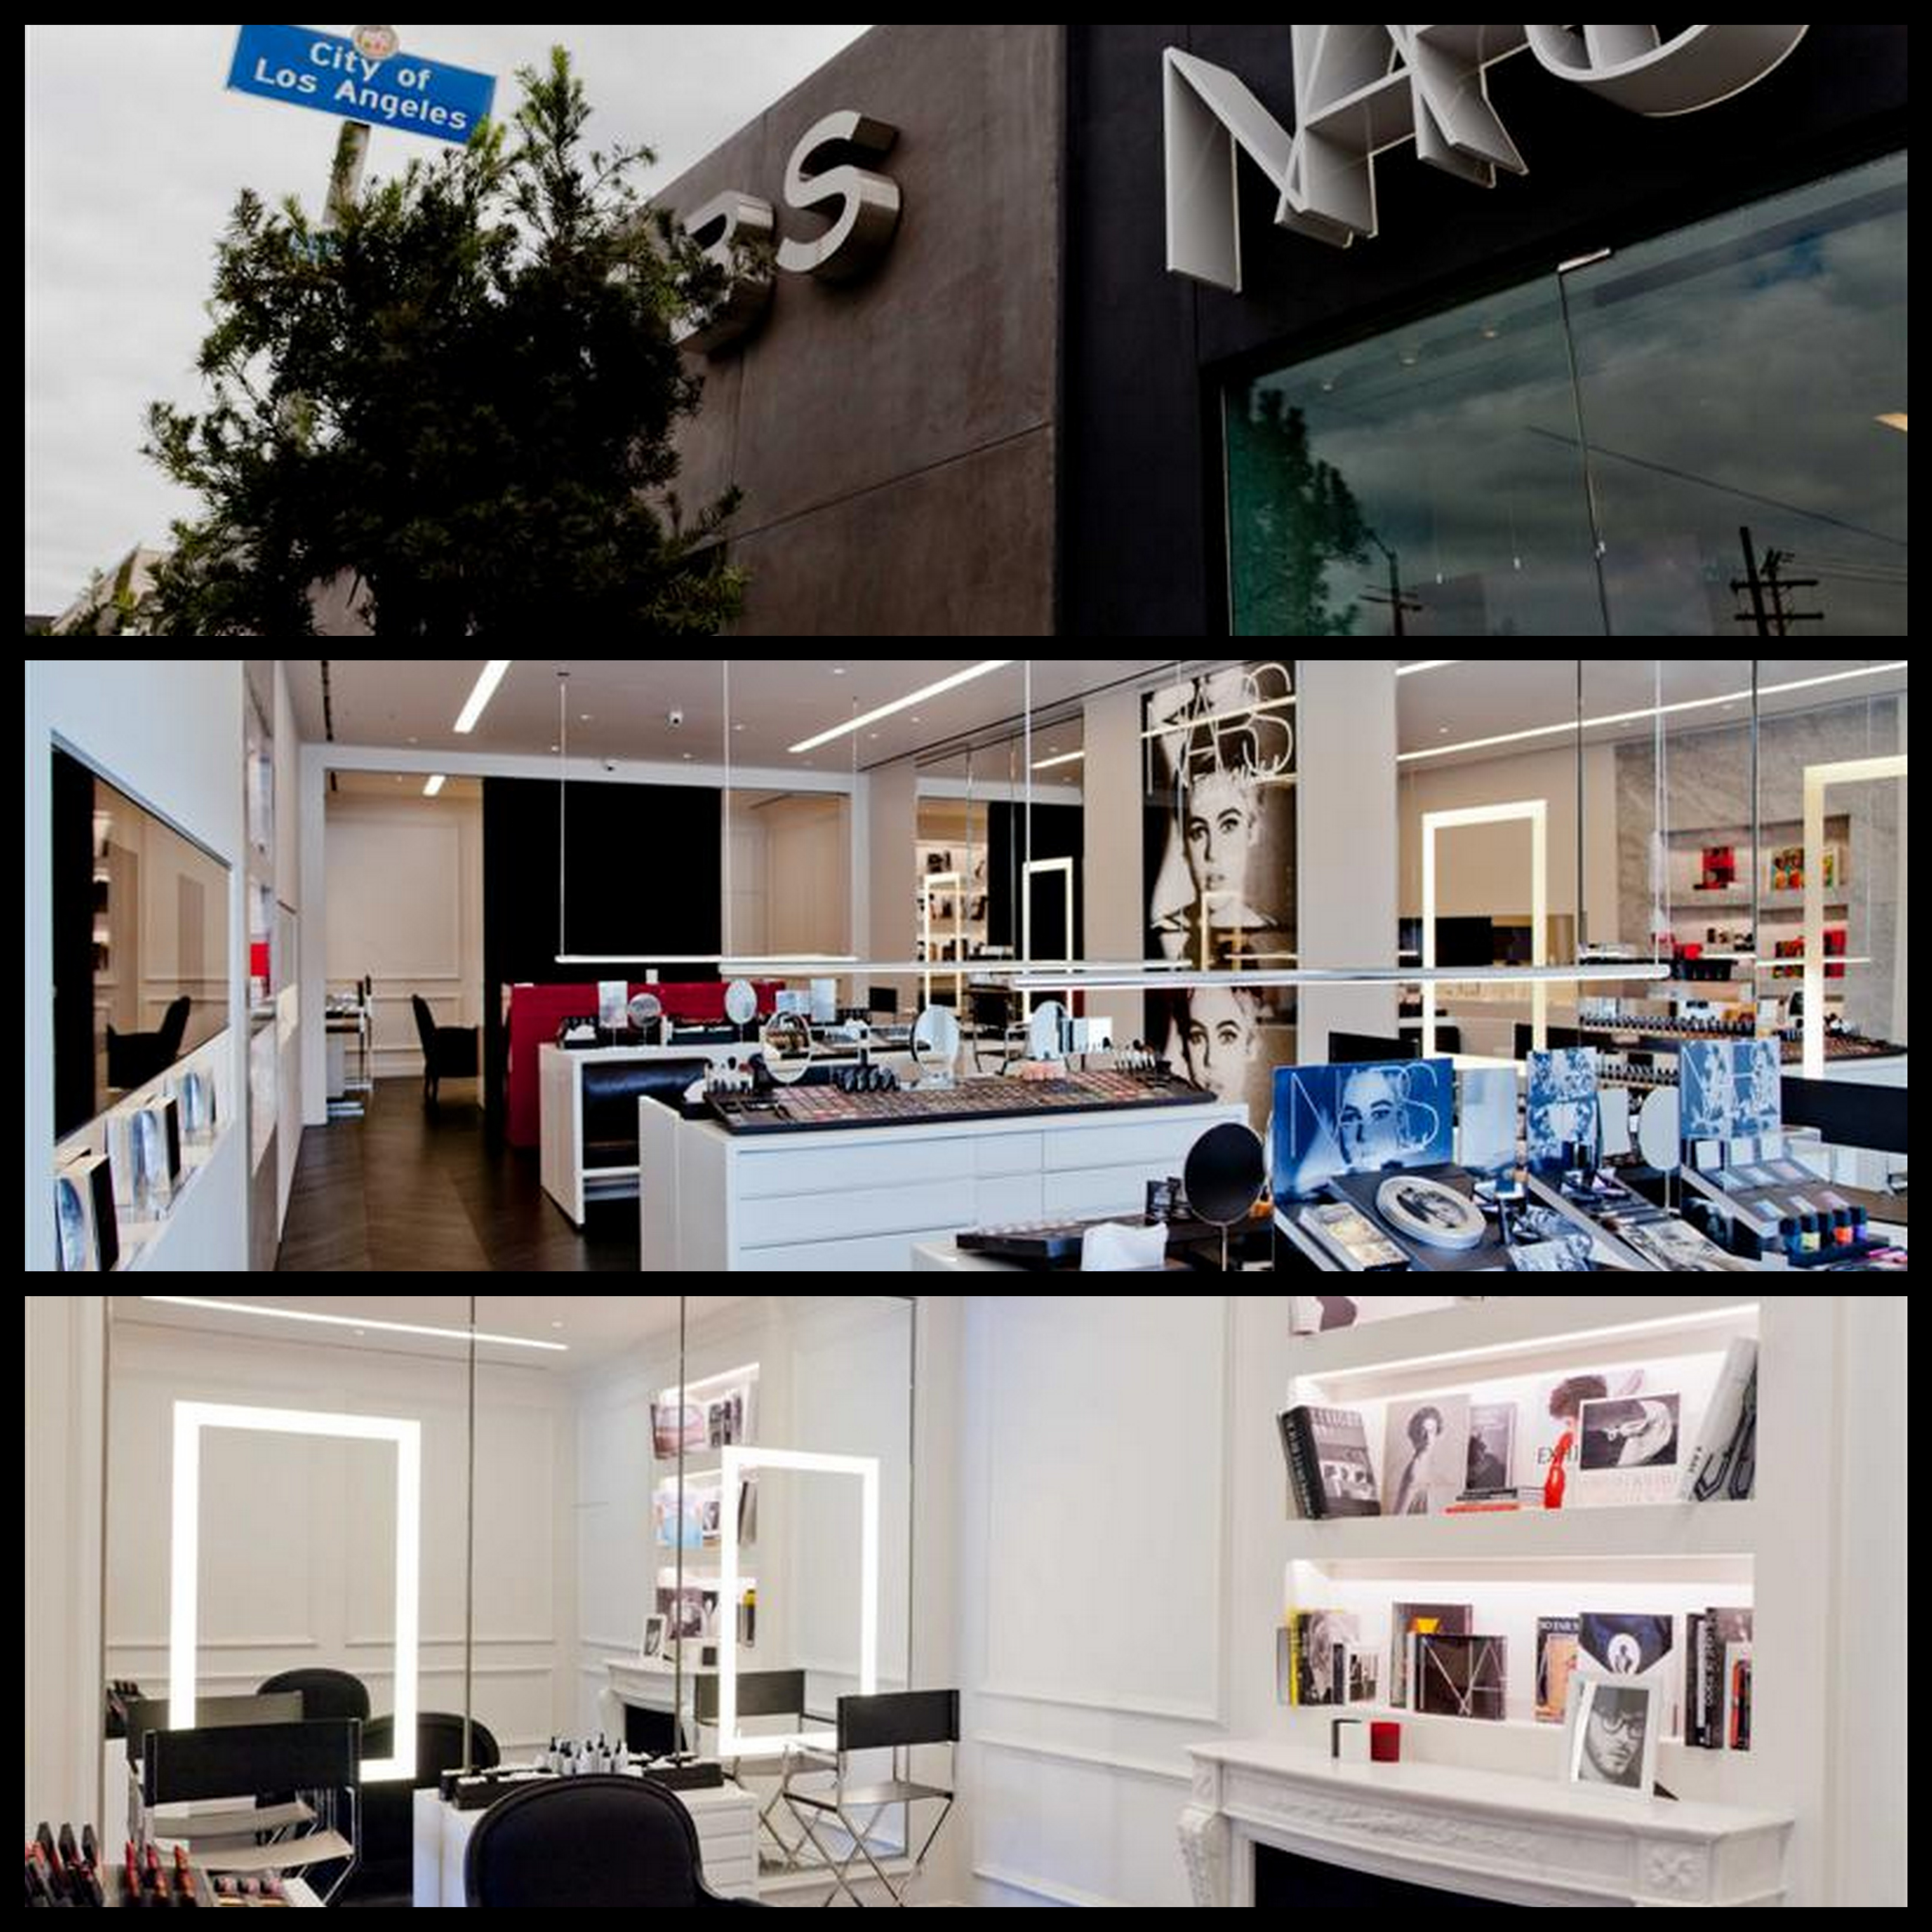 NARS inaugura Boutique en Los Angeles - Miss and Chic Blog